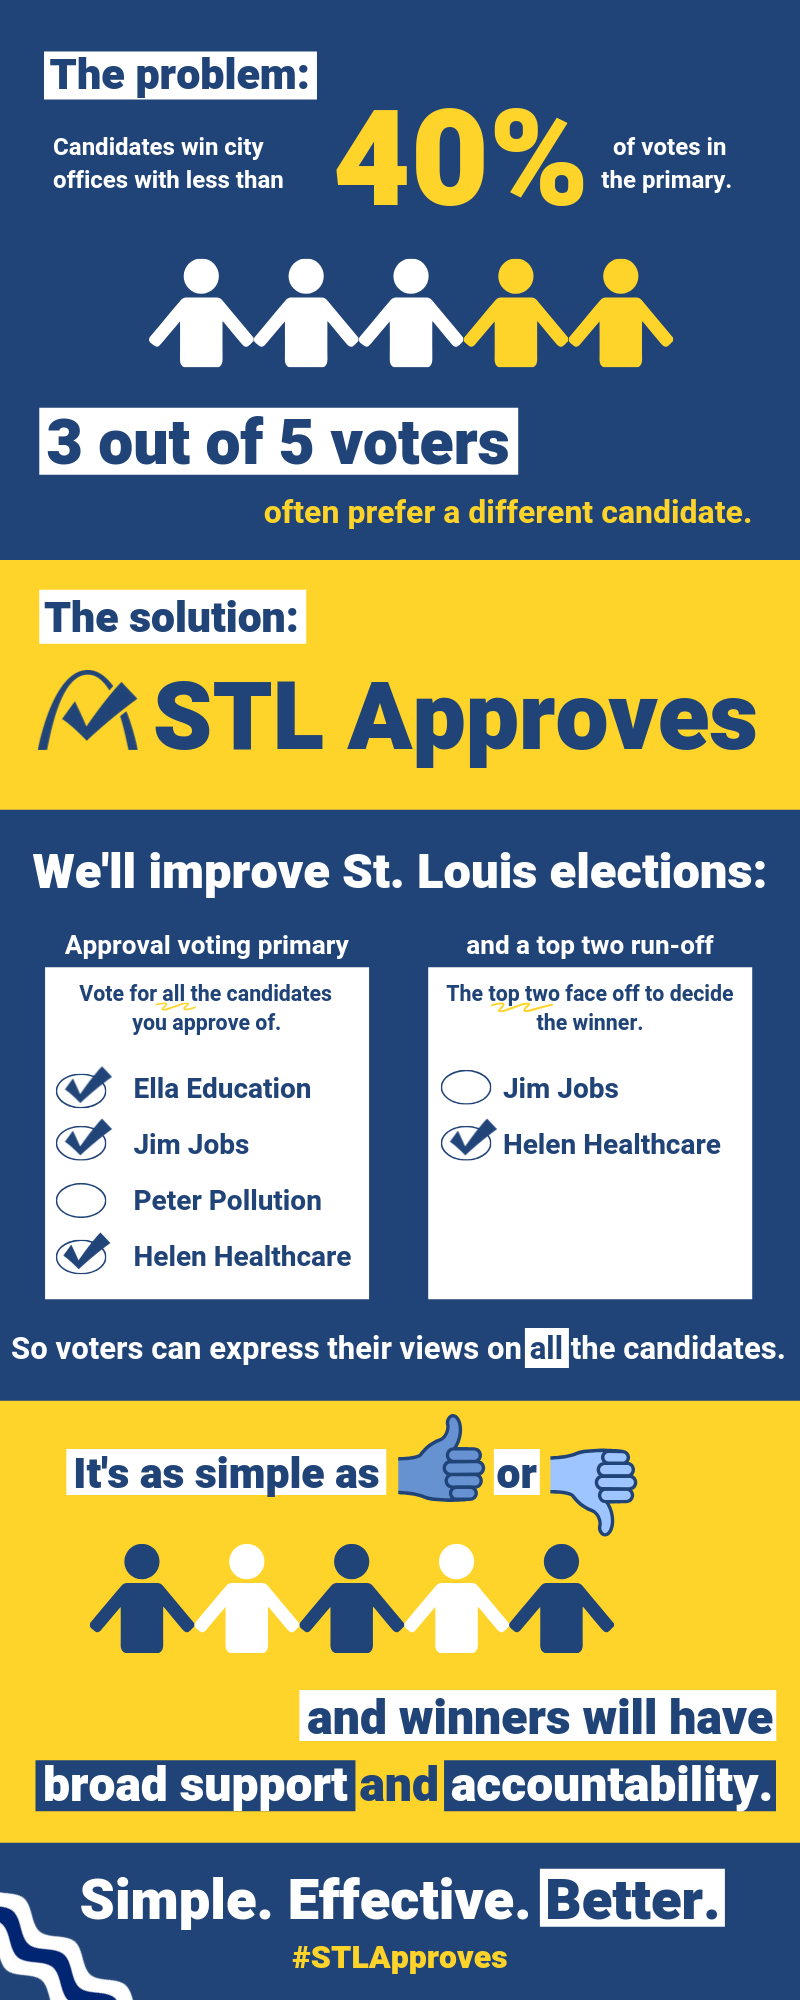 STL Approves